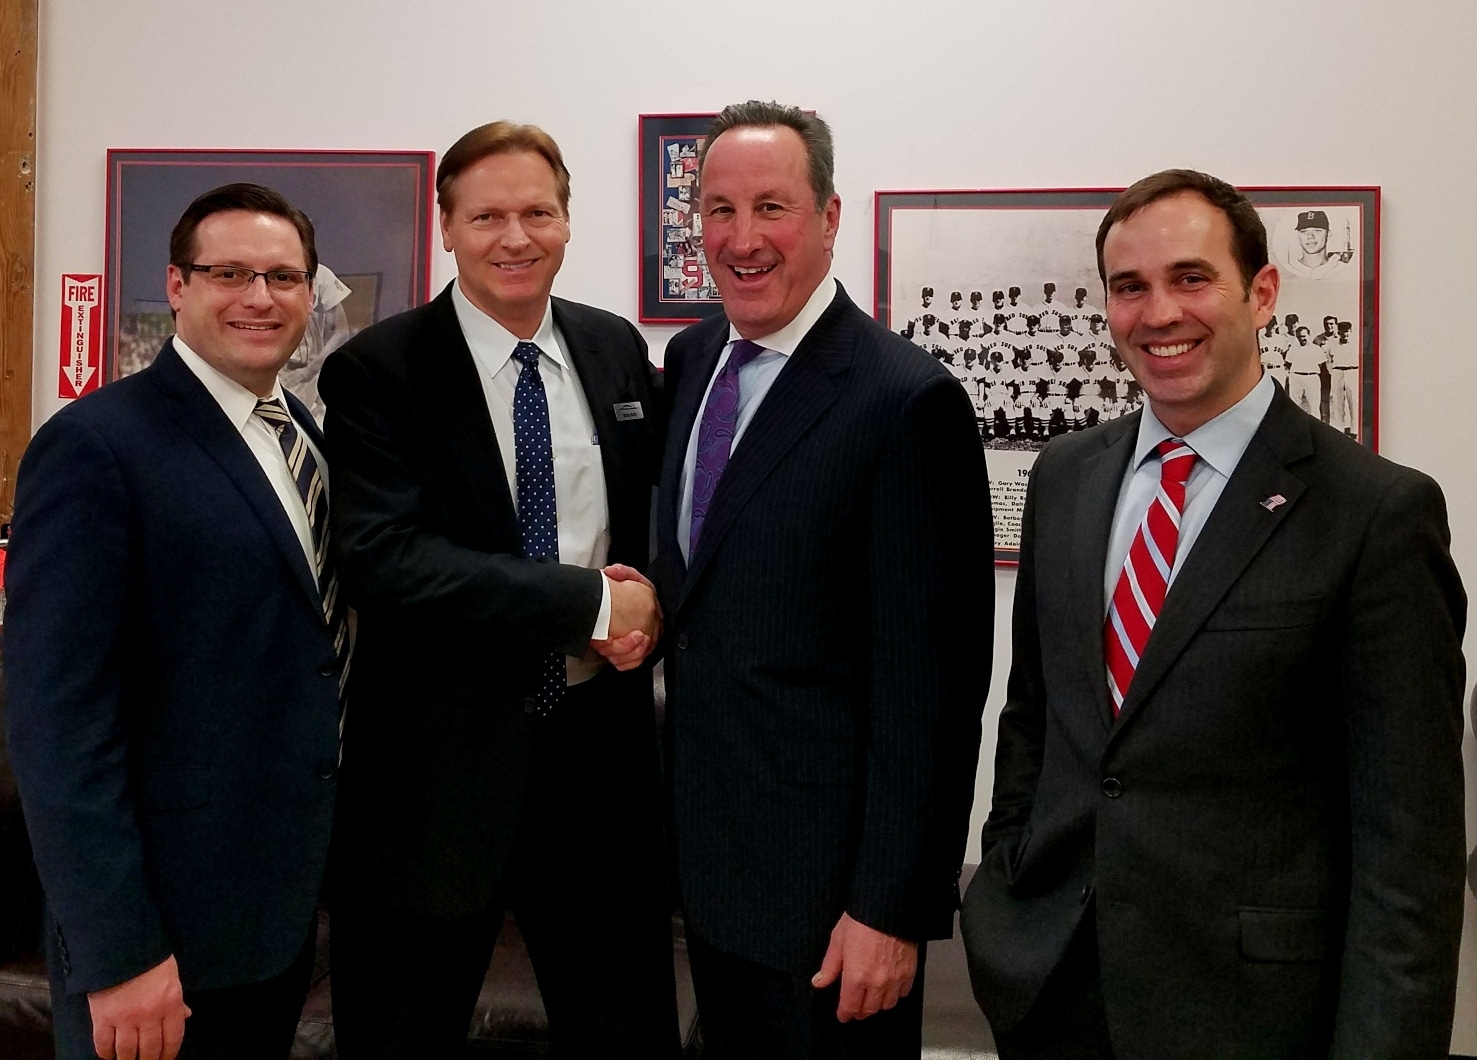 Kelly Automotive Group Purchases Clark Chrysler Jeep Dodge Ram In Methuen Kelly Automotive Group